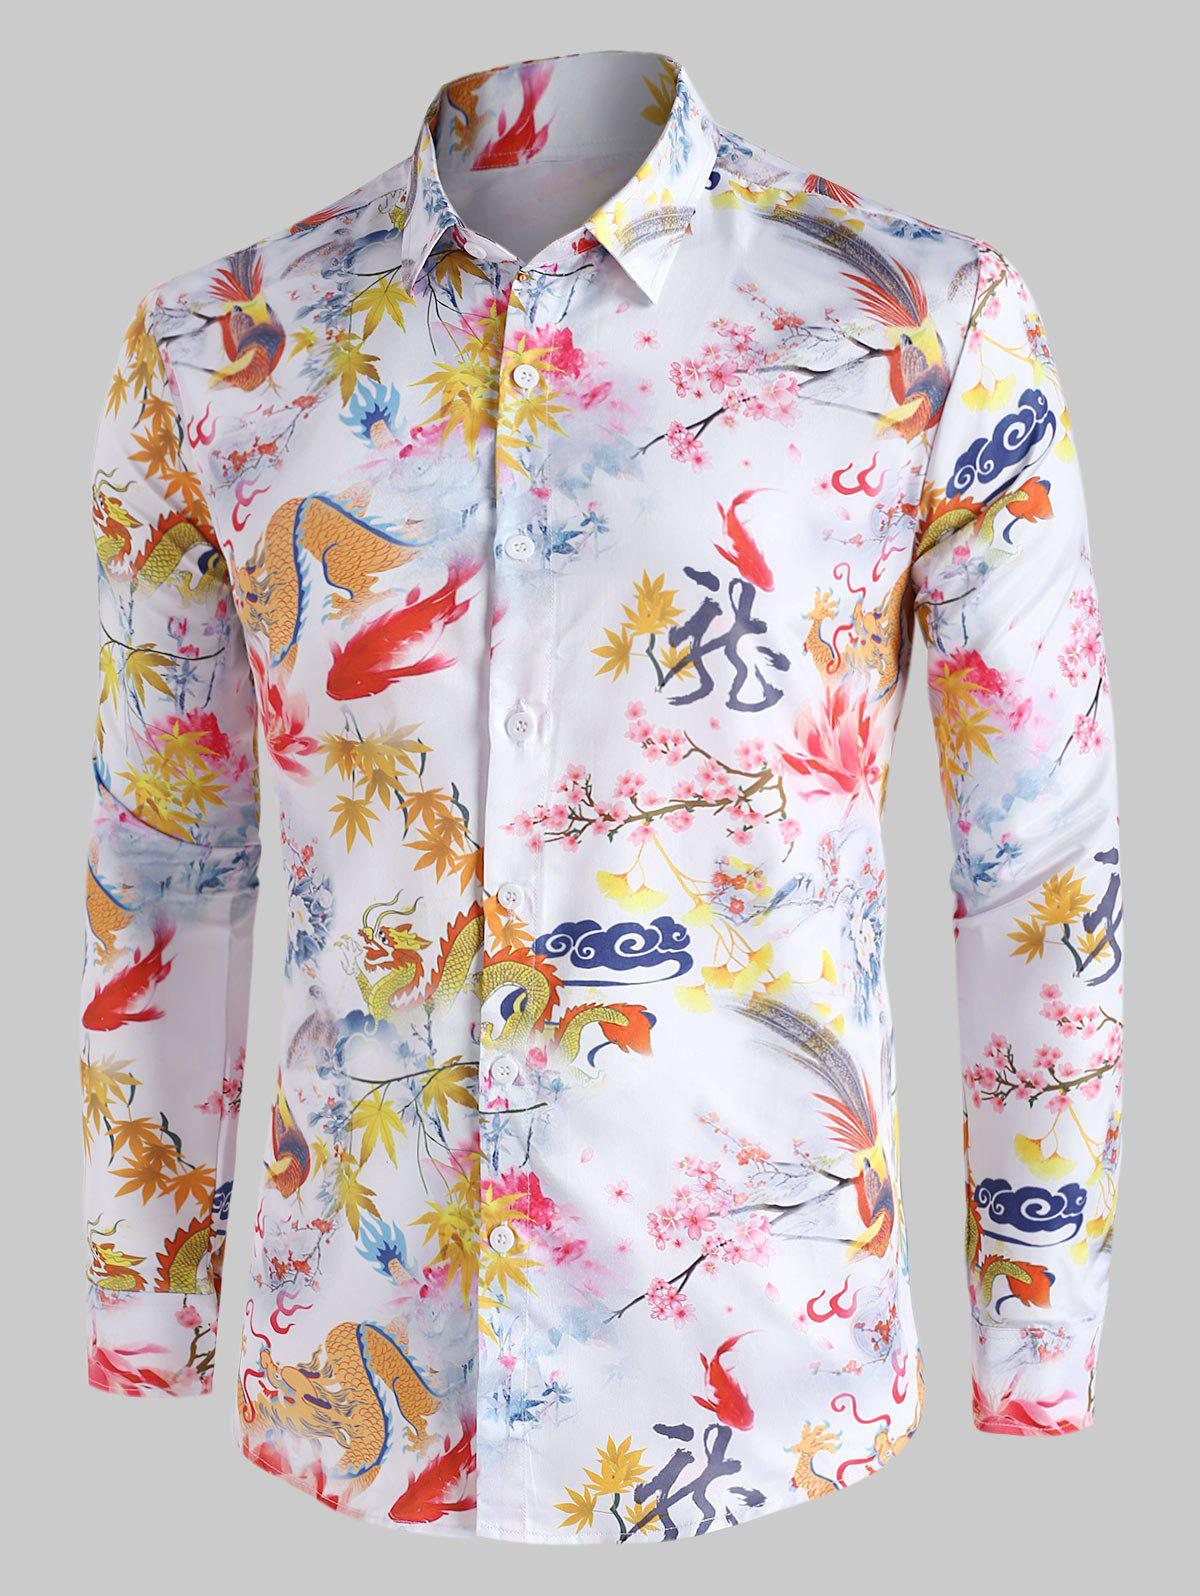 Chinese Dragon Painting Vintage Button Up Shirt - multicolor 2XL